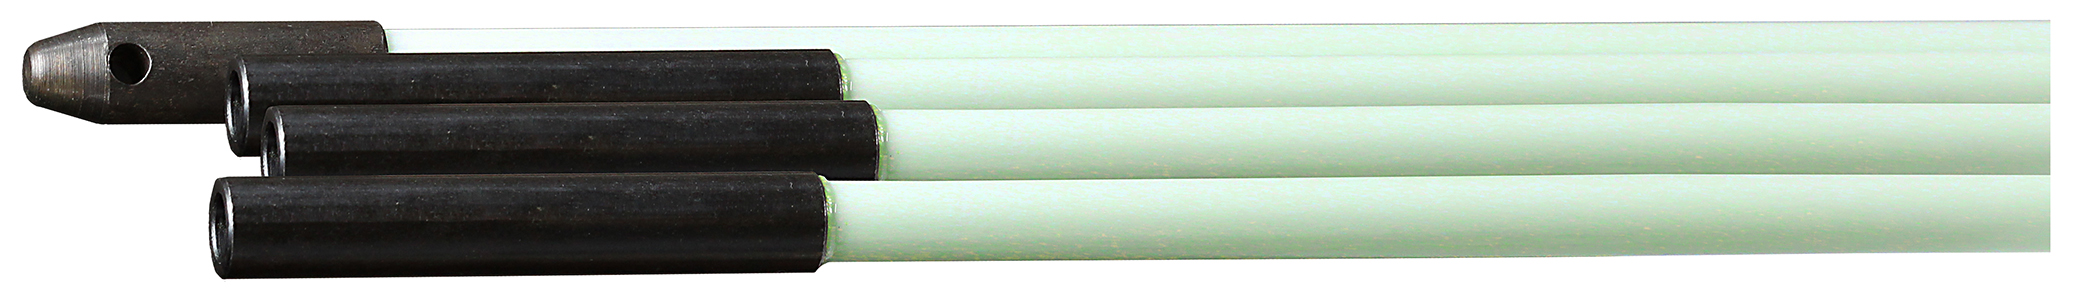 "1/4"" X 24' Four 1/4"" X 6' Lite Stick Rods w - Eyes"